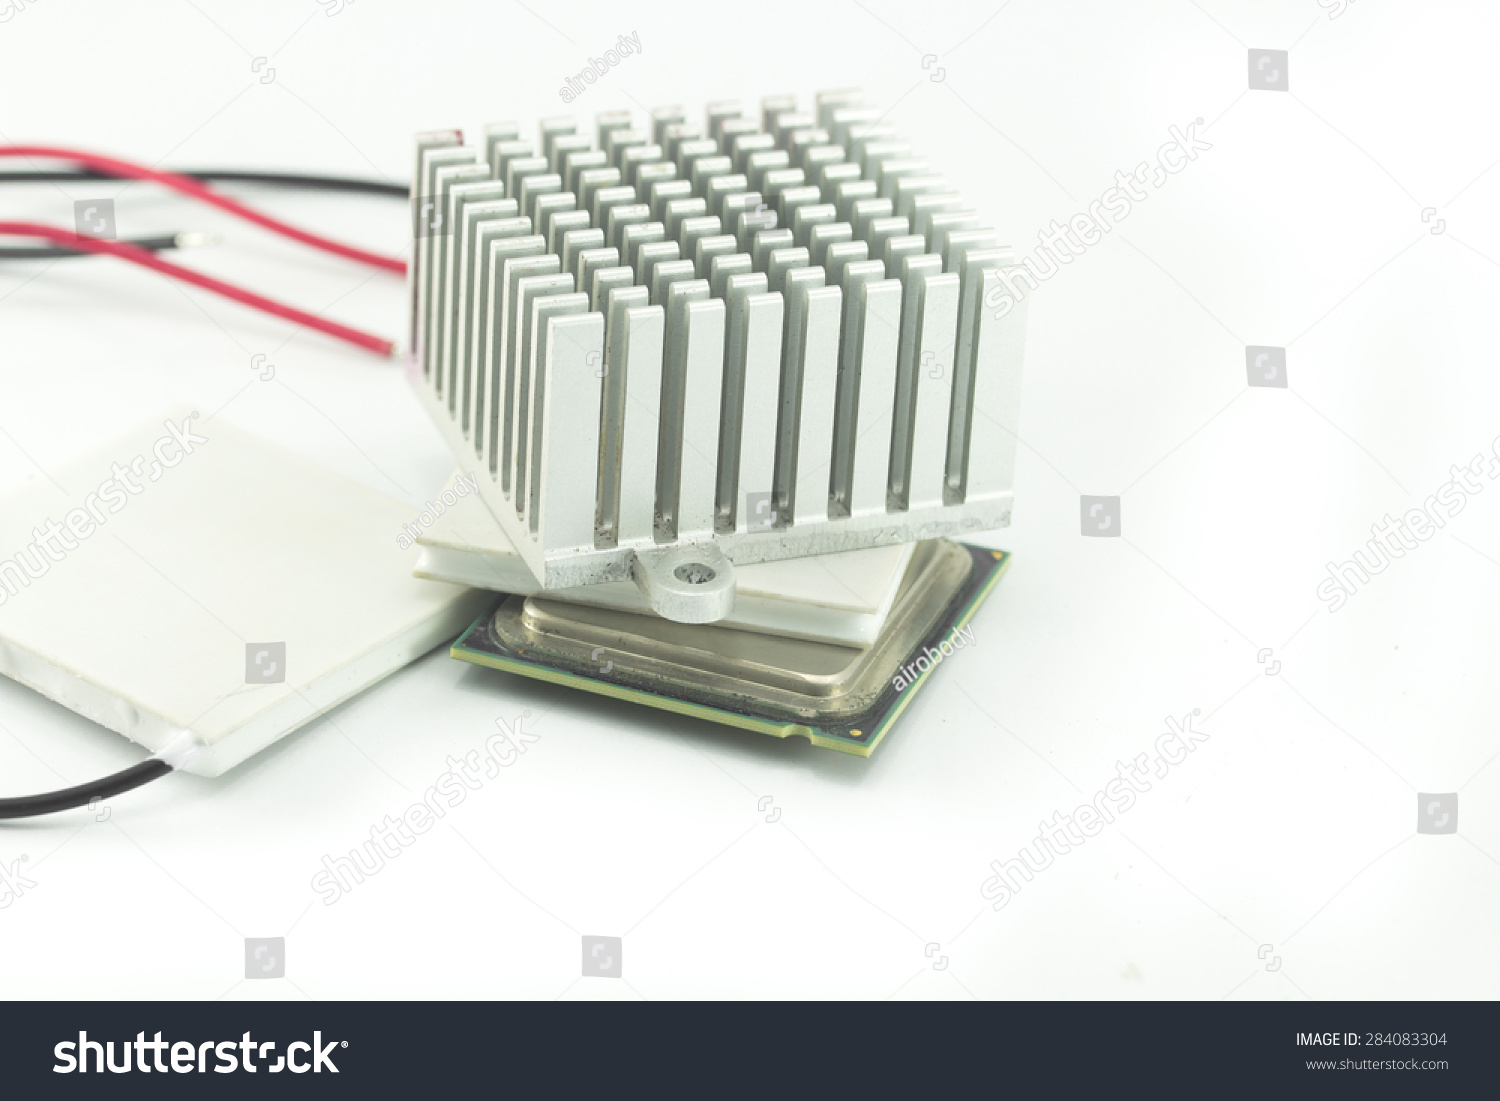 heat sink for thermoelectric cooler